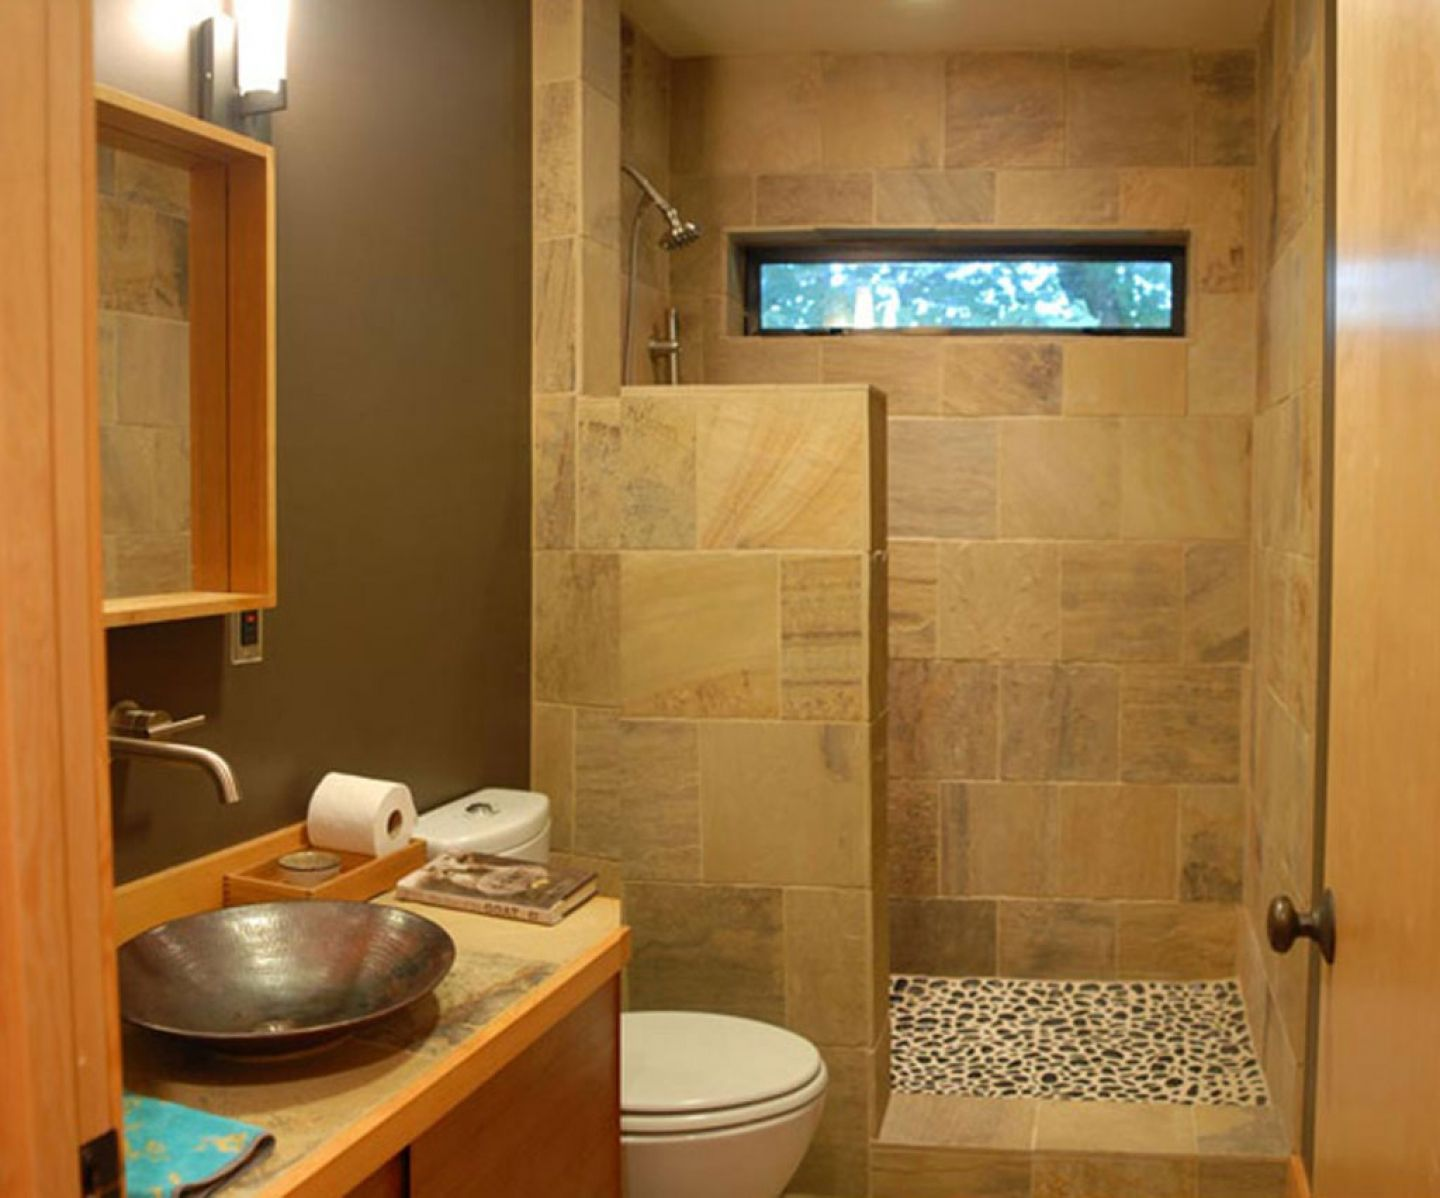 Tiny Bathroom Ideas 30 best small bathroom ideas | small bathroom, ranch style and ranch